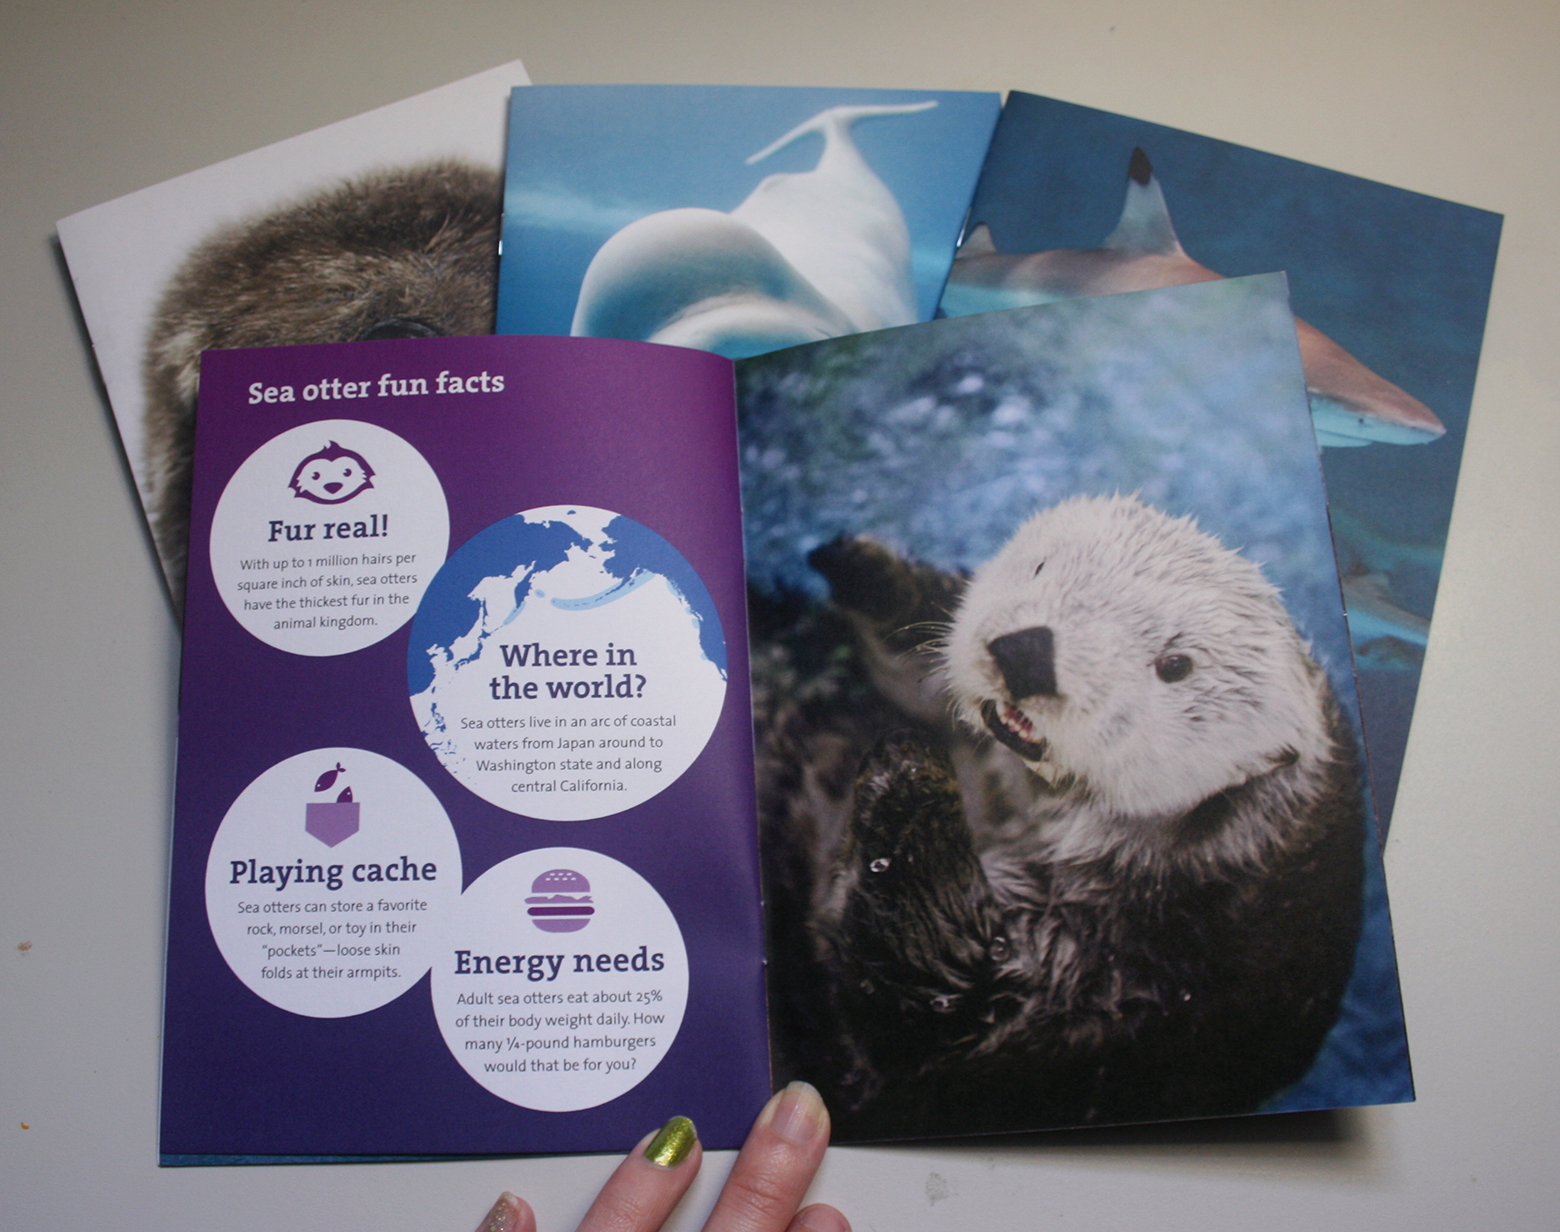 A booklet is shown opened to an infographic spread. On the left page are white circles over a purple gradient. The title reads, 'Fun sea otter facts'. Each circle contains an icon and a fun fact about otters. The right page has a photo of a sea otter in the water, stretching up to look at the camera.